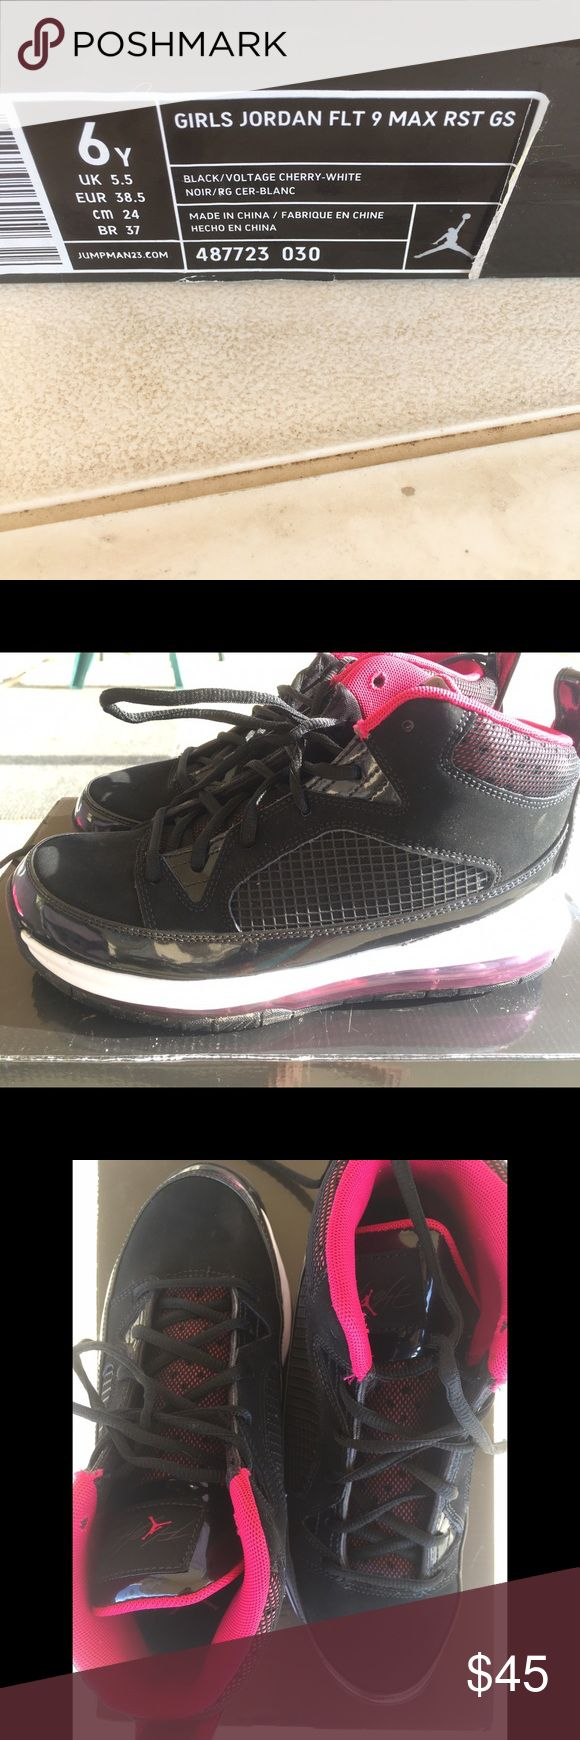 Girls Jordan Flight 9 Max RST New w/o tags but w/ box Only worn a couple of times  Hot Pink and Black Size 6Y Jordan Shoes